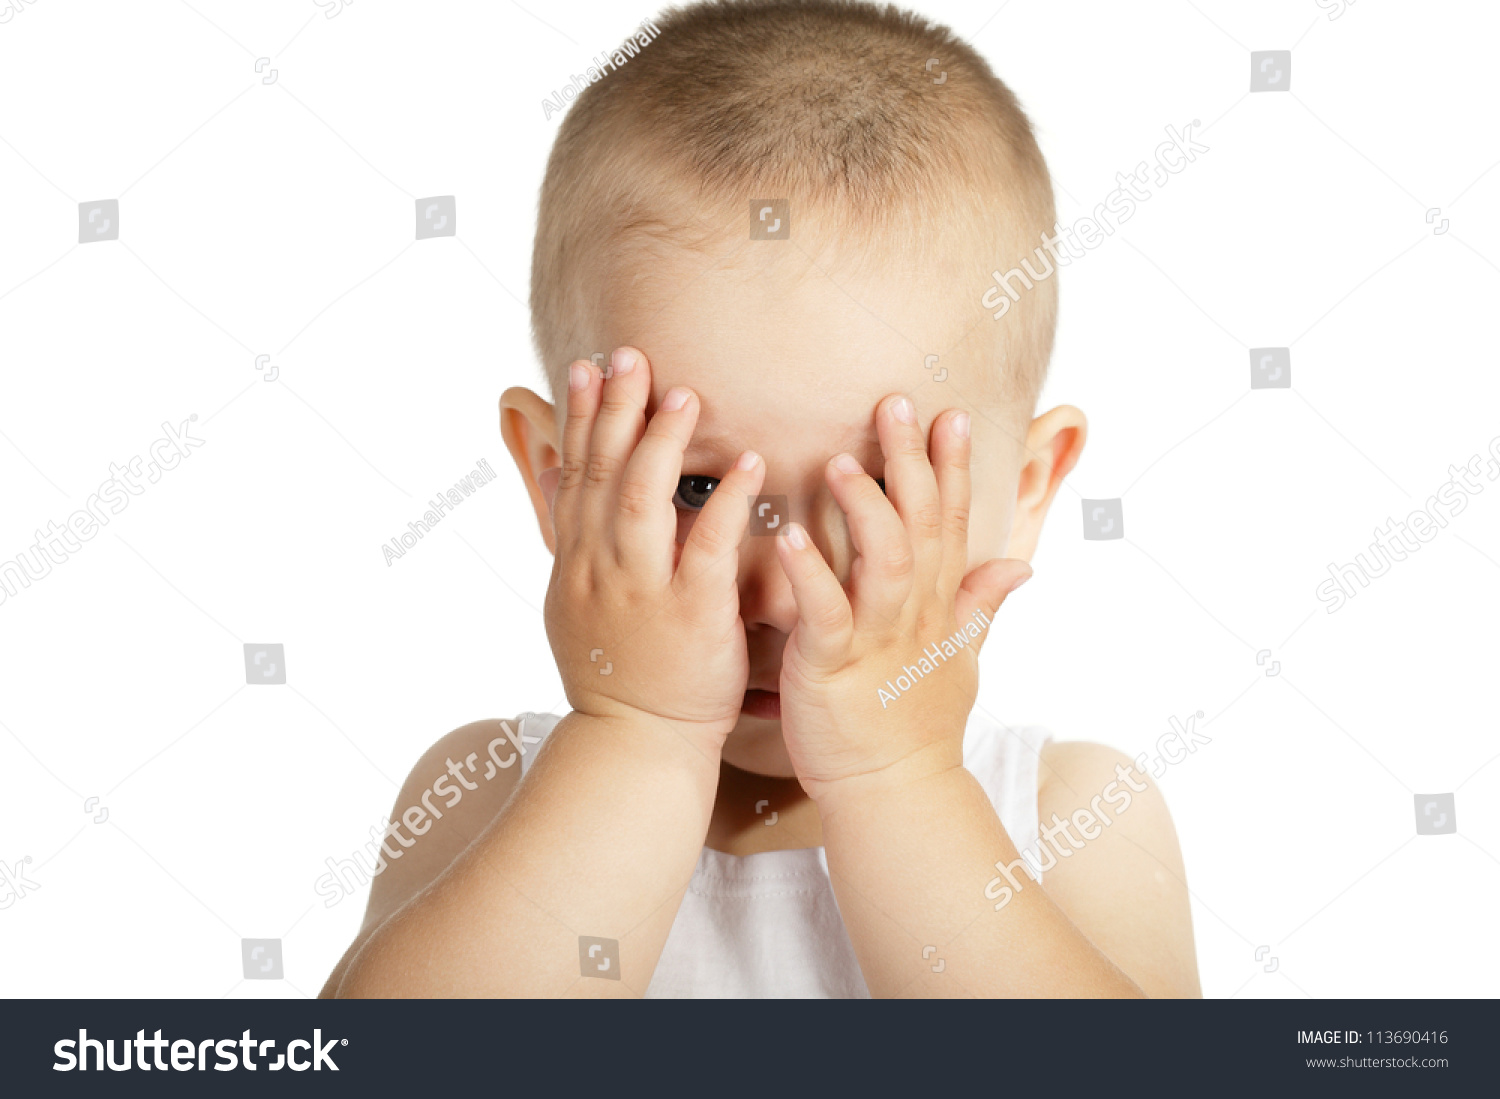 Child Holding Hands Over Eyes Stock Photo 113690416